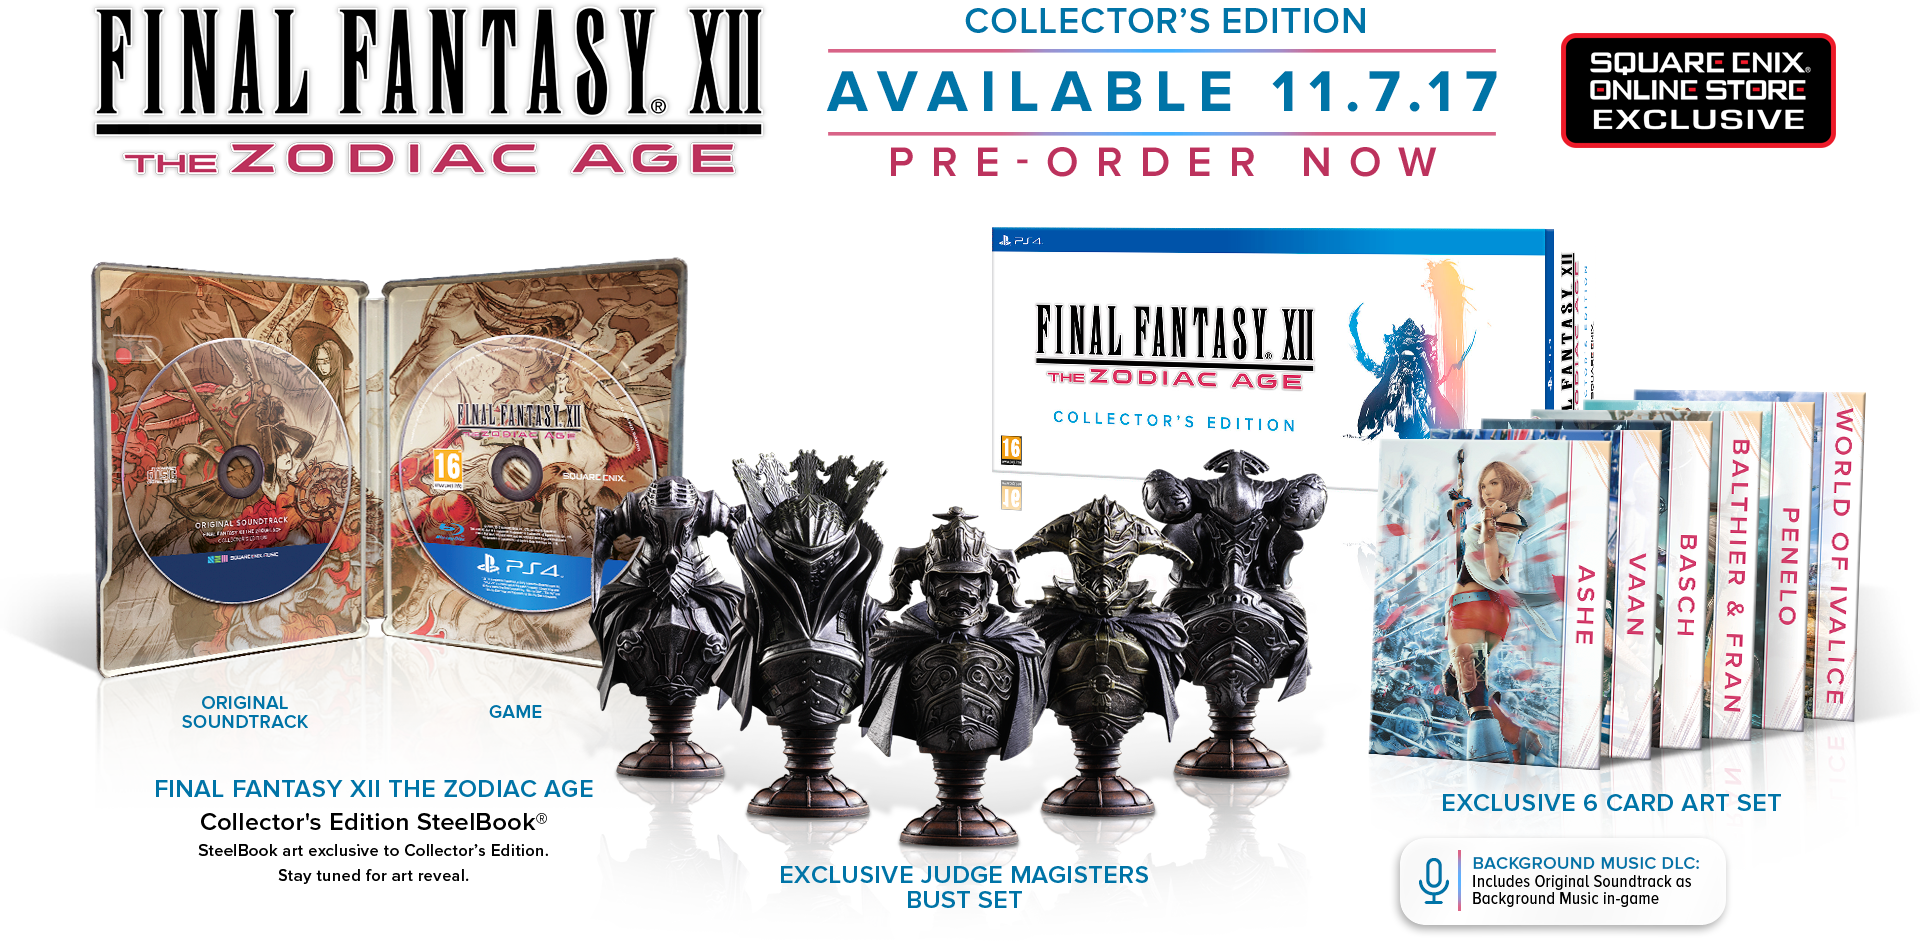 FINAL FANTASY XII The Zodiac Age Collector's Edition